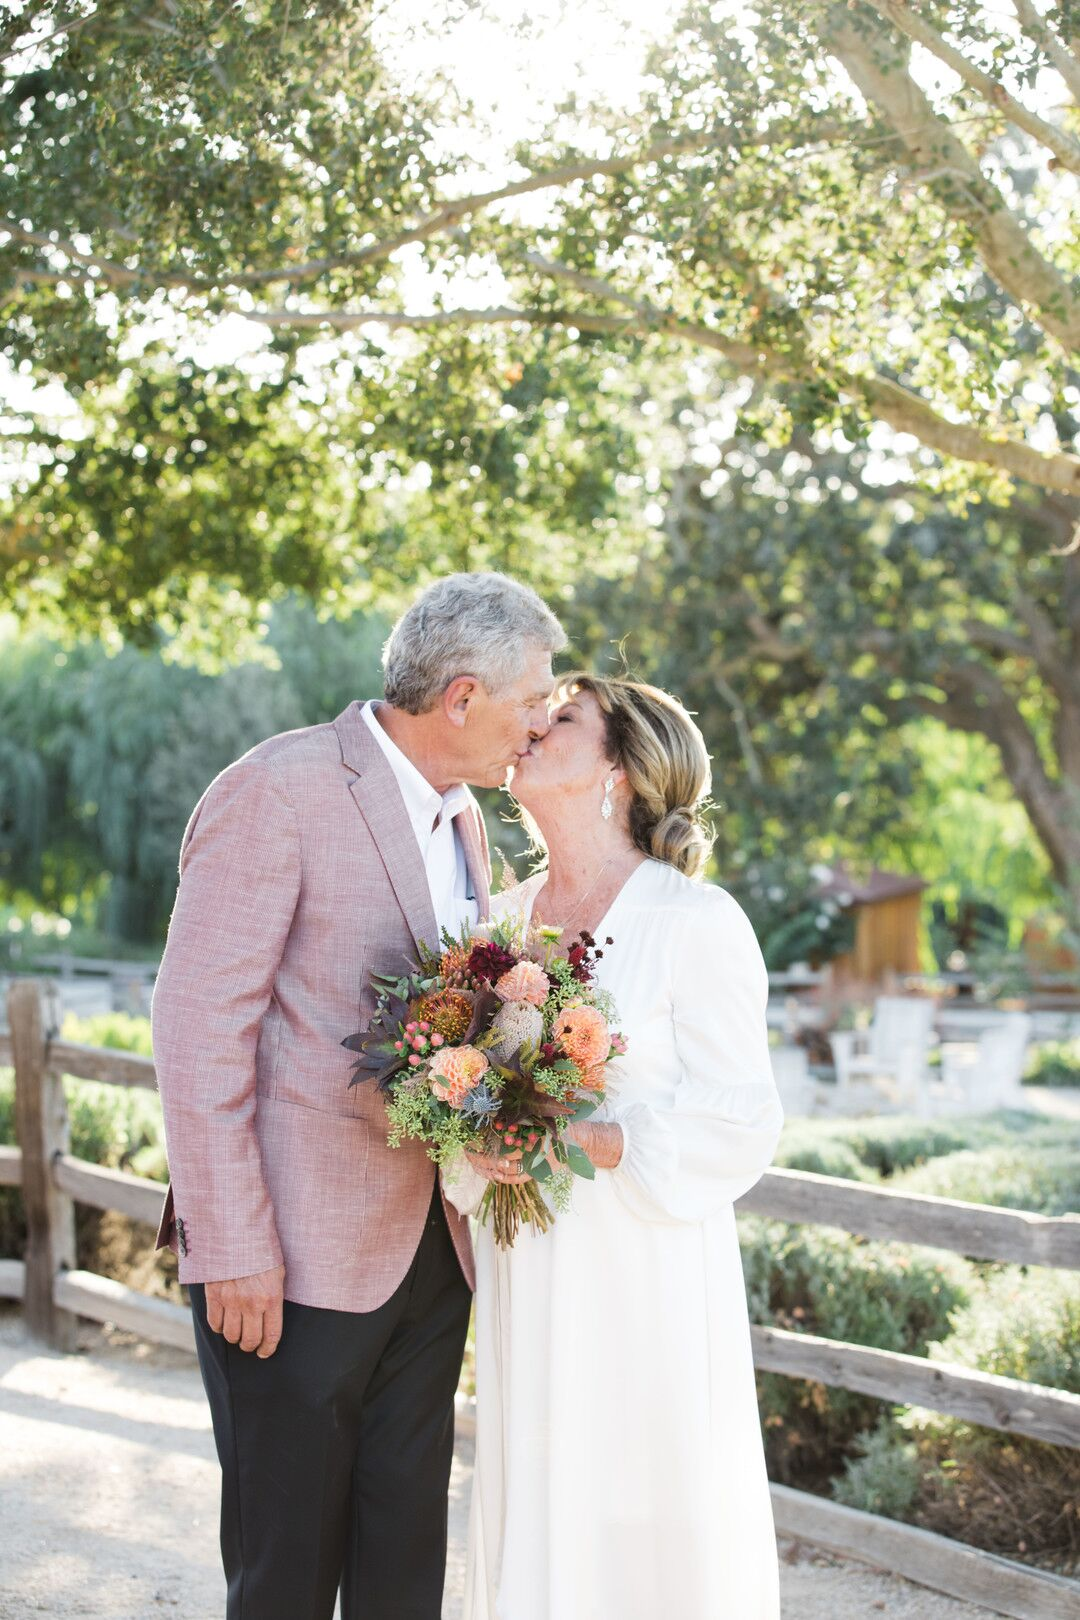 www.santabarbarawedding.com | Venue: Firestone Vineyard | Photographer: Just Kiss Collective | Bride and Groom Kiss